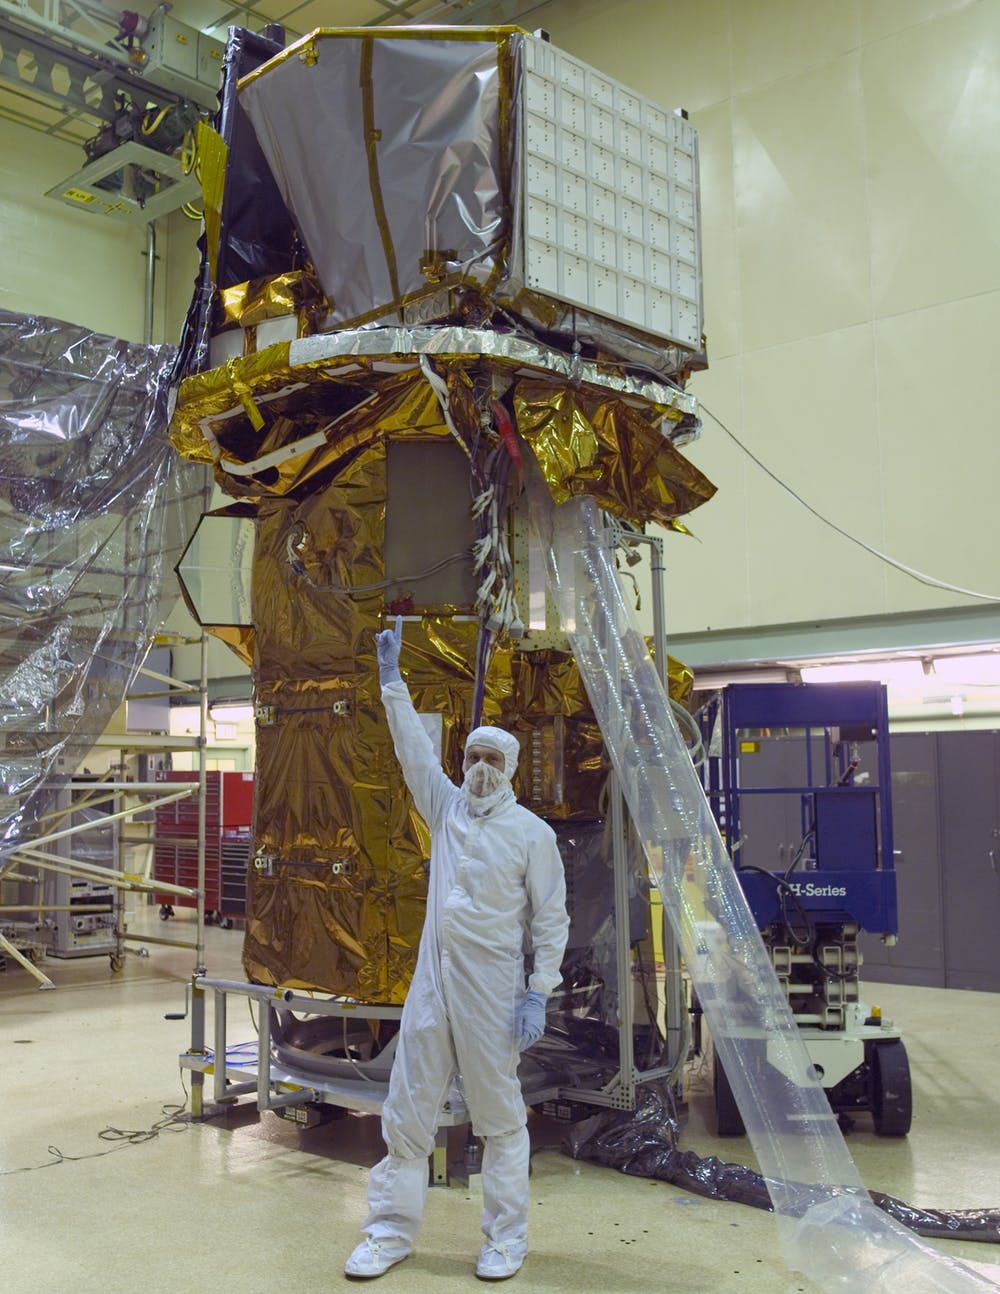 Neil Gehrels in the cleanroom with the Swift telescope while under construction. - Image Credit:  NASA ,  CC BY